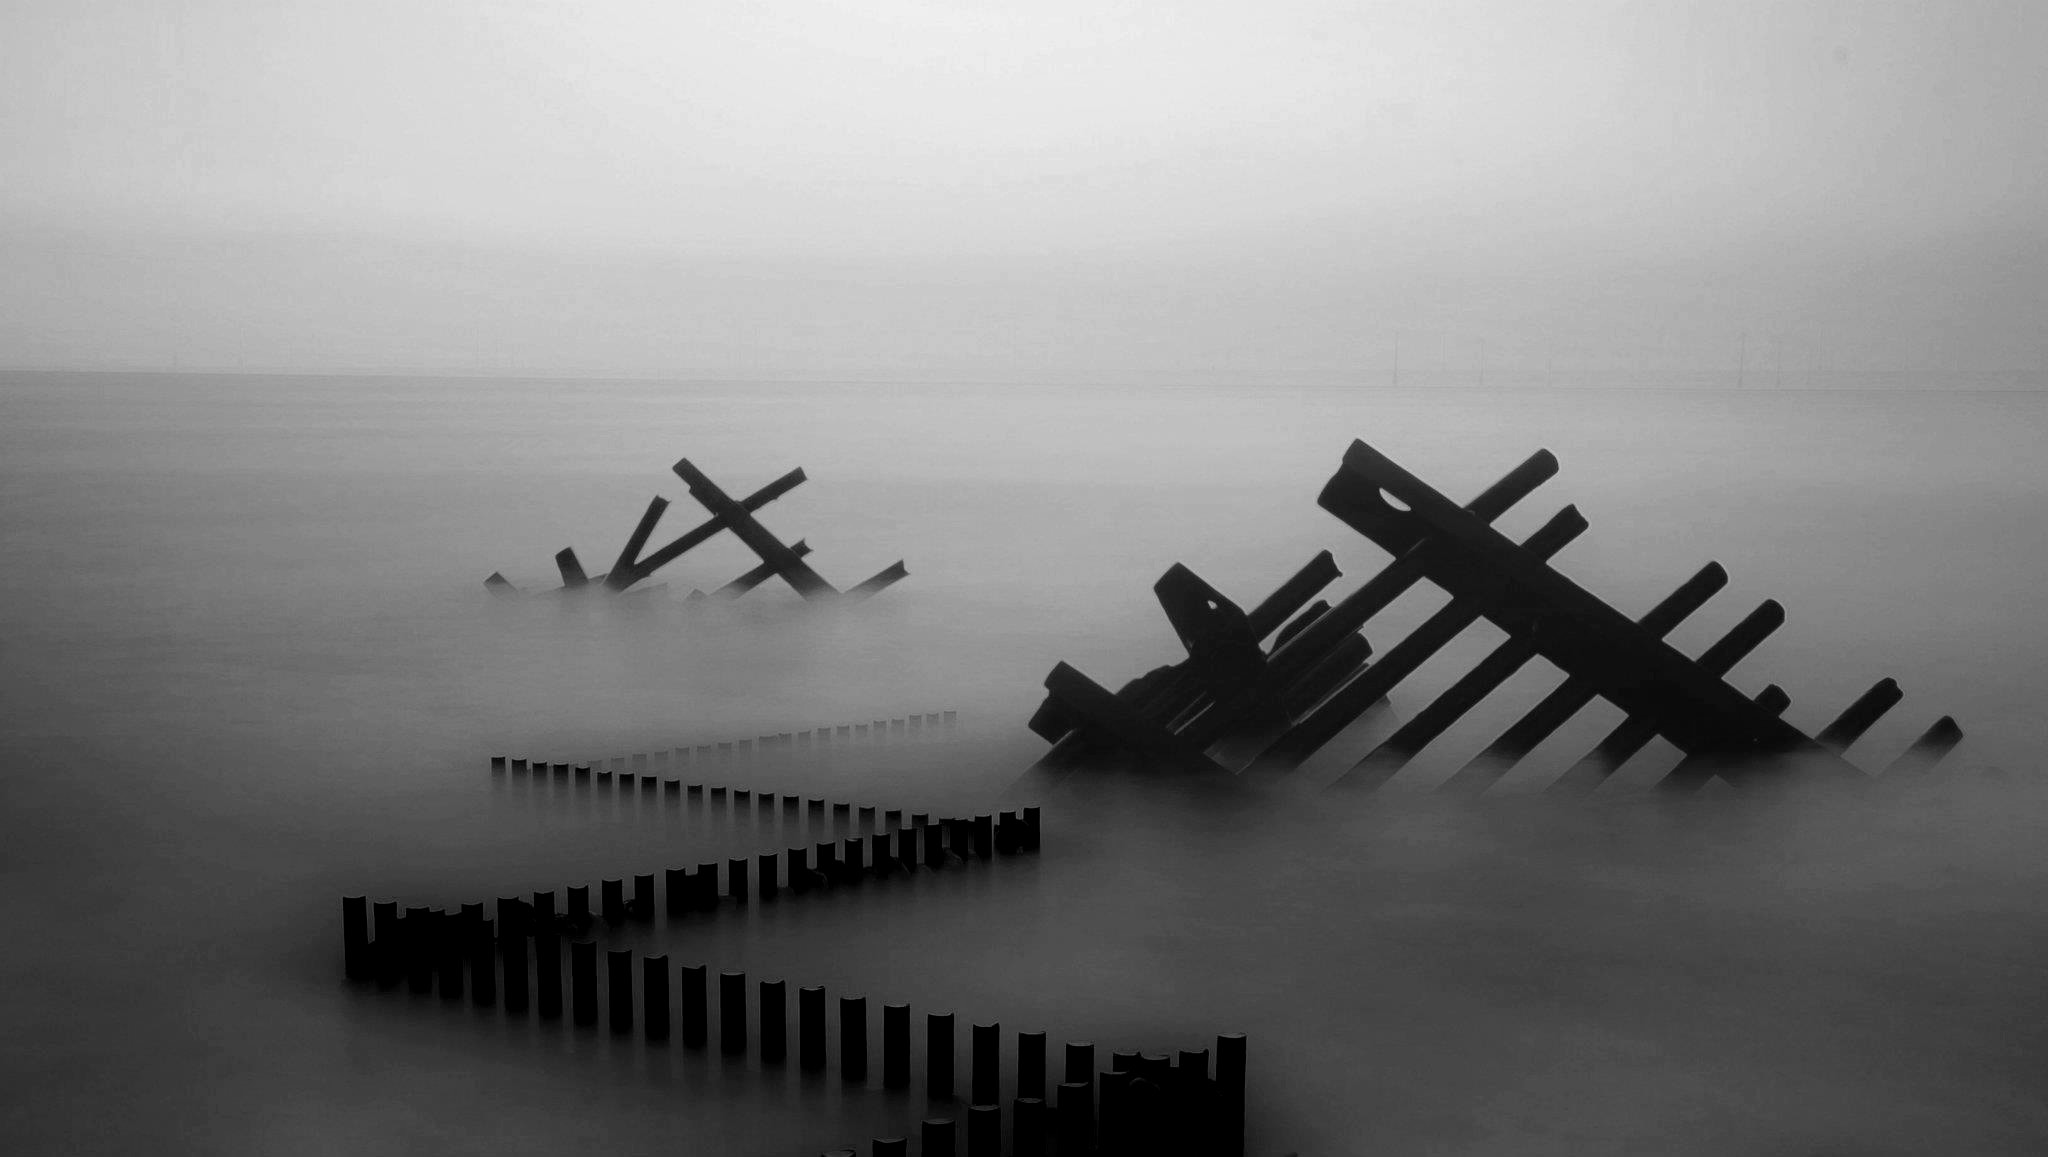 Photograph Sinking to dreams by RYAN STUDIO on 500px